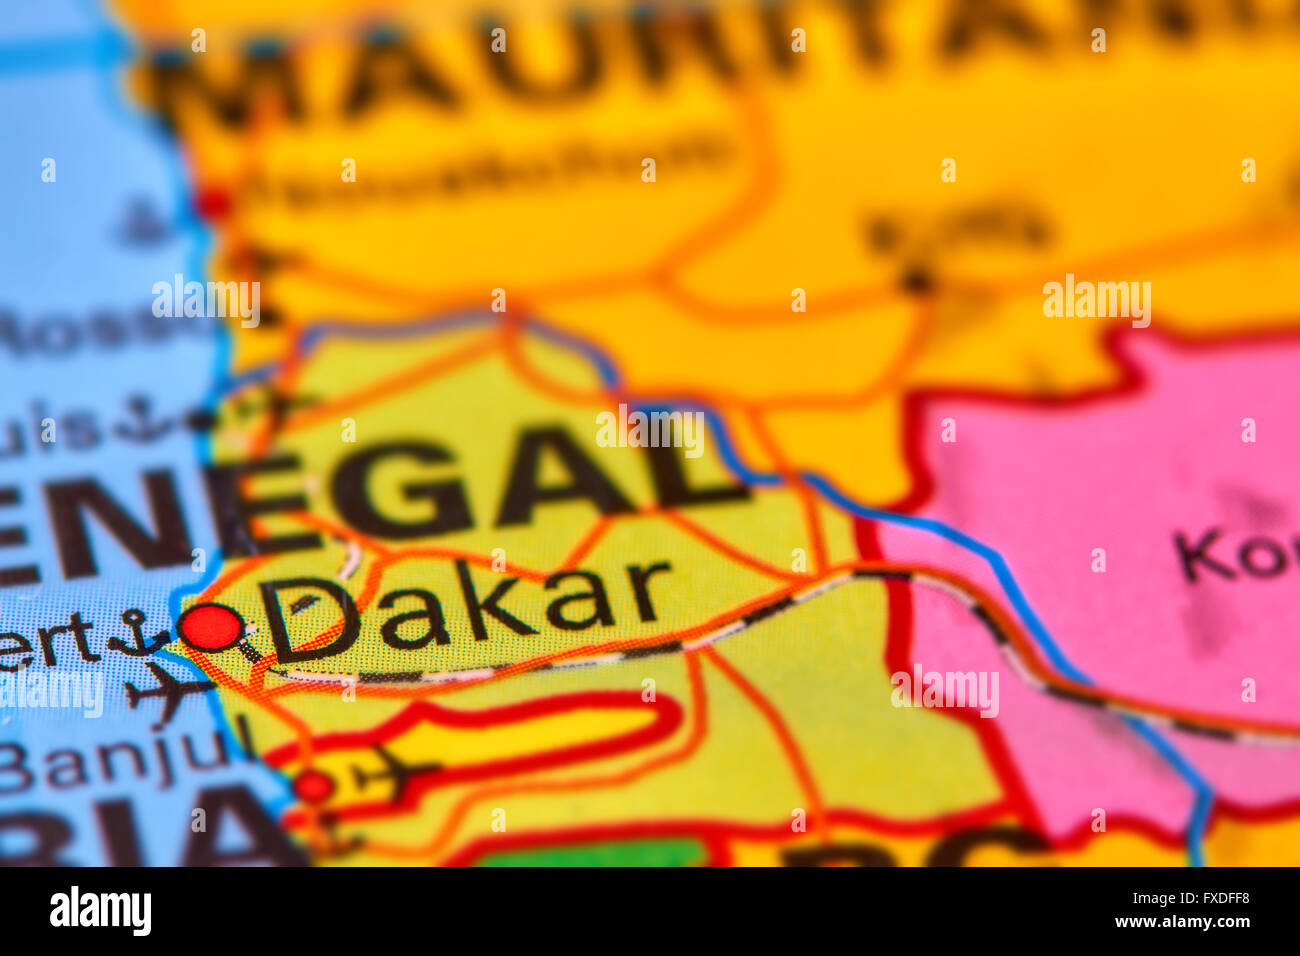 Dakar, Capital City of Senegal in Africa on the World Map - Stock Image